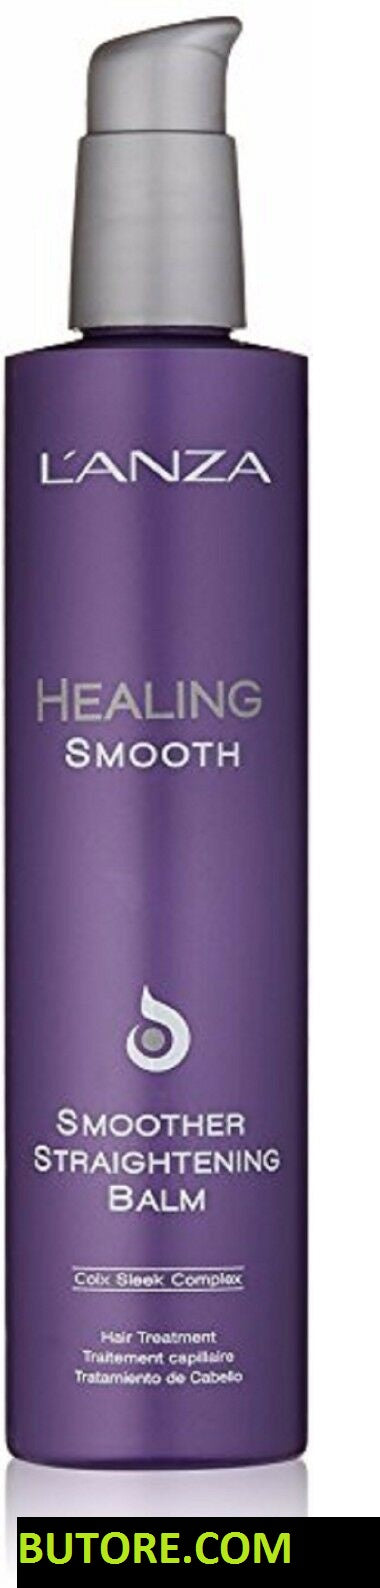 Lanza Healing Smooth Smoother Straightening Balm 8.5 oz